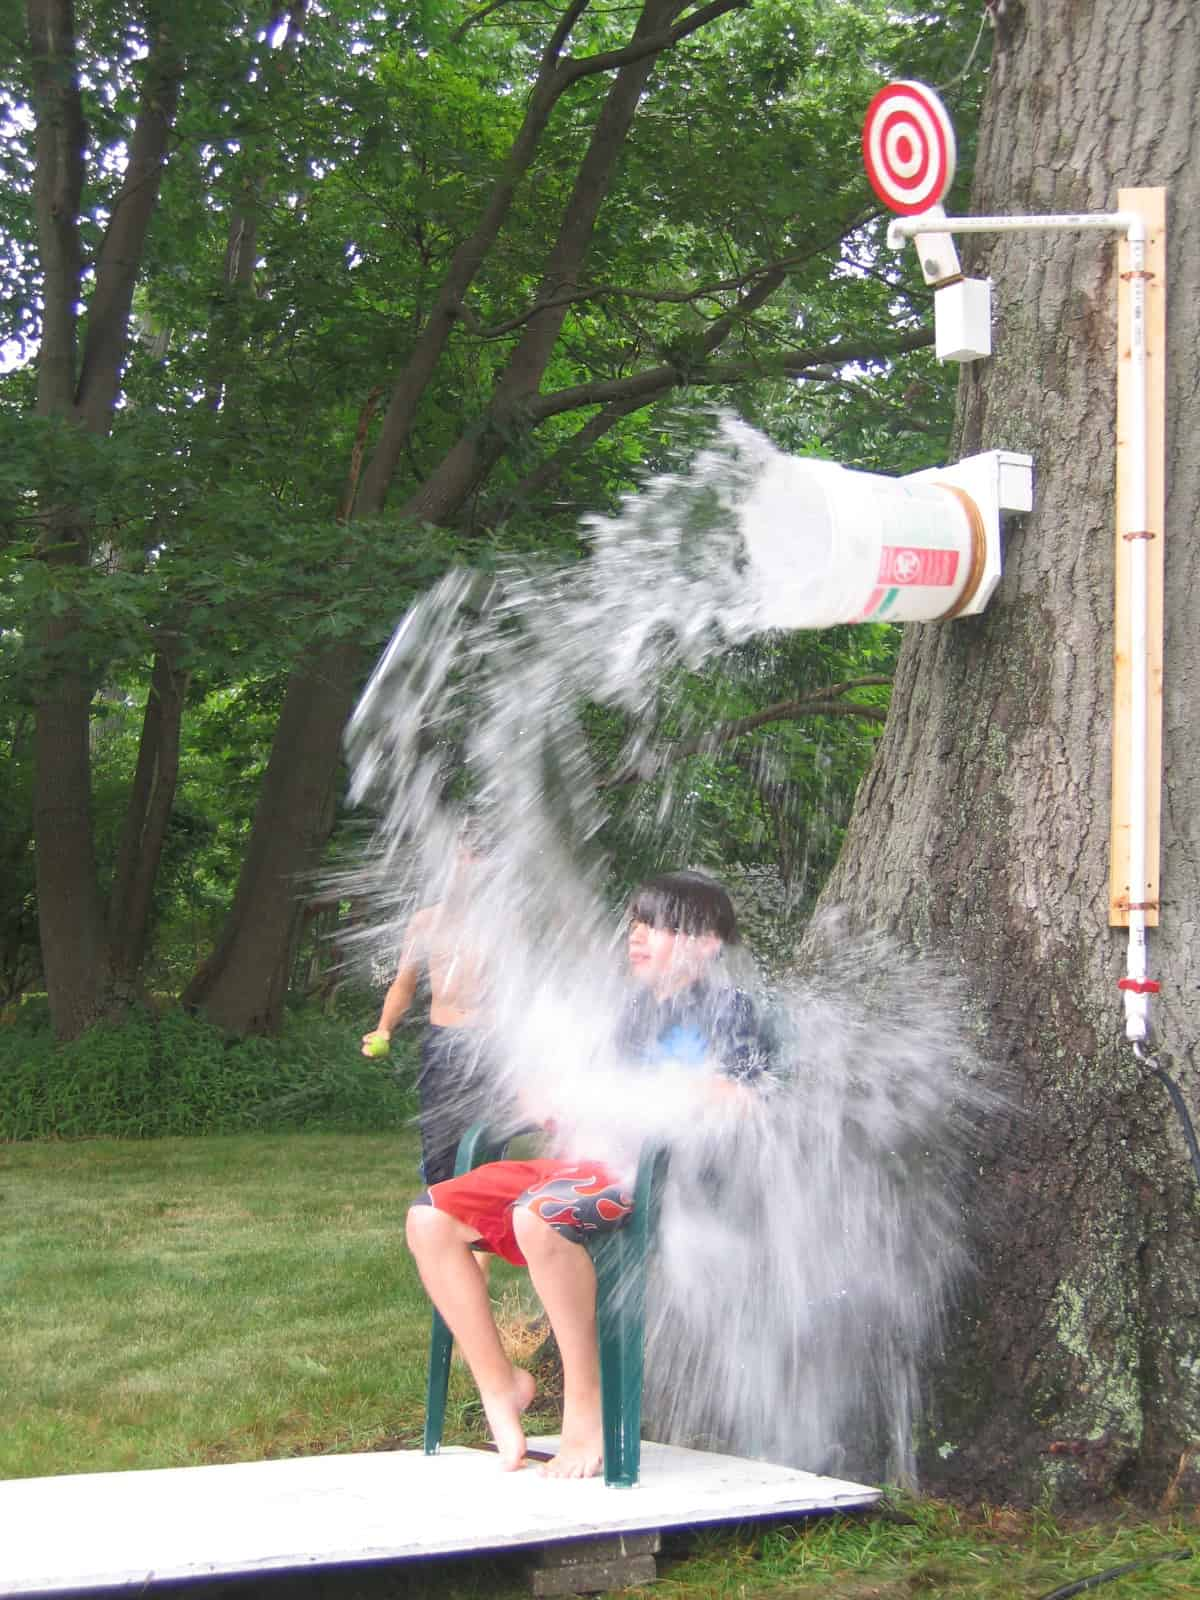 Diy backyard dunk tank